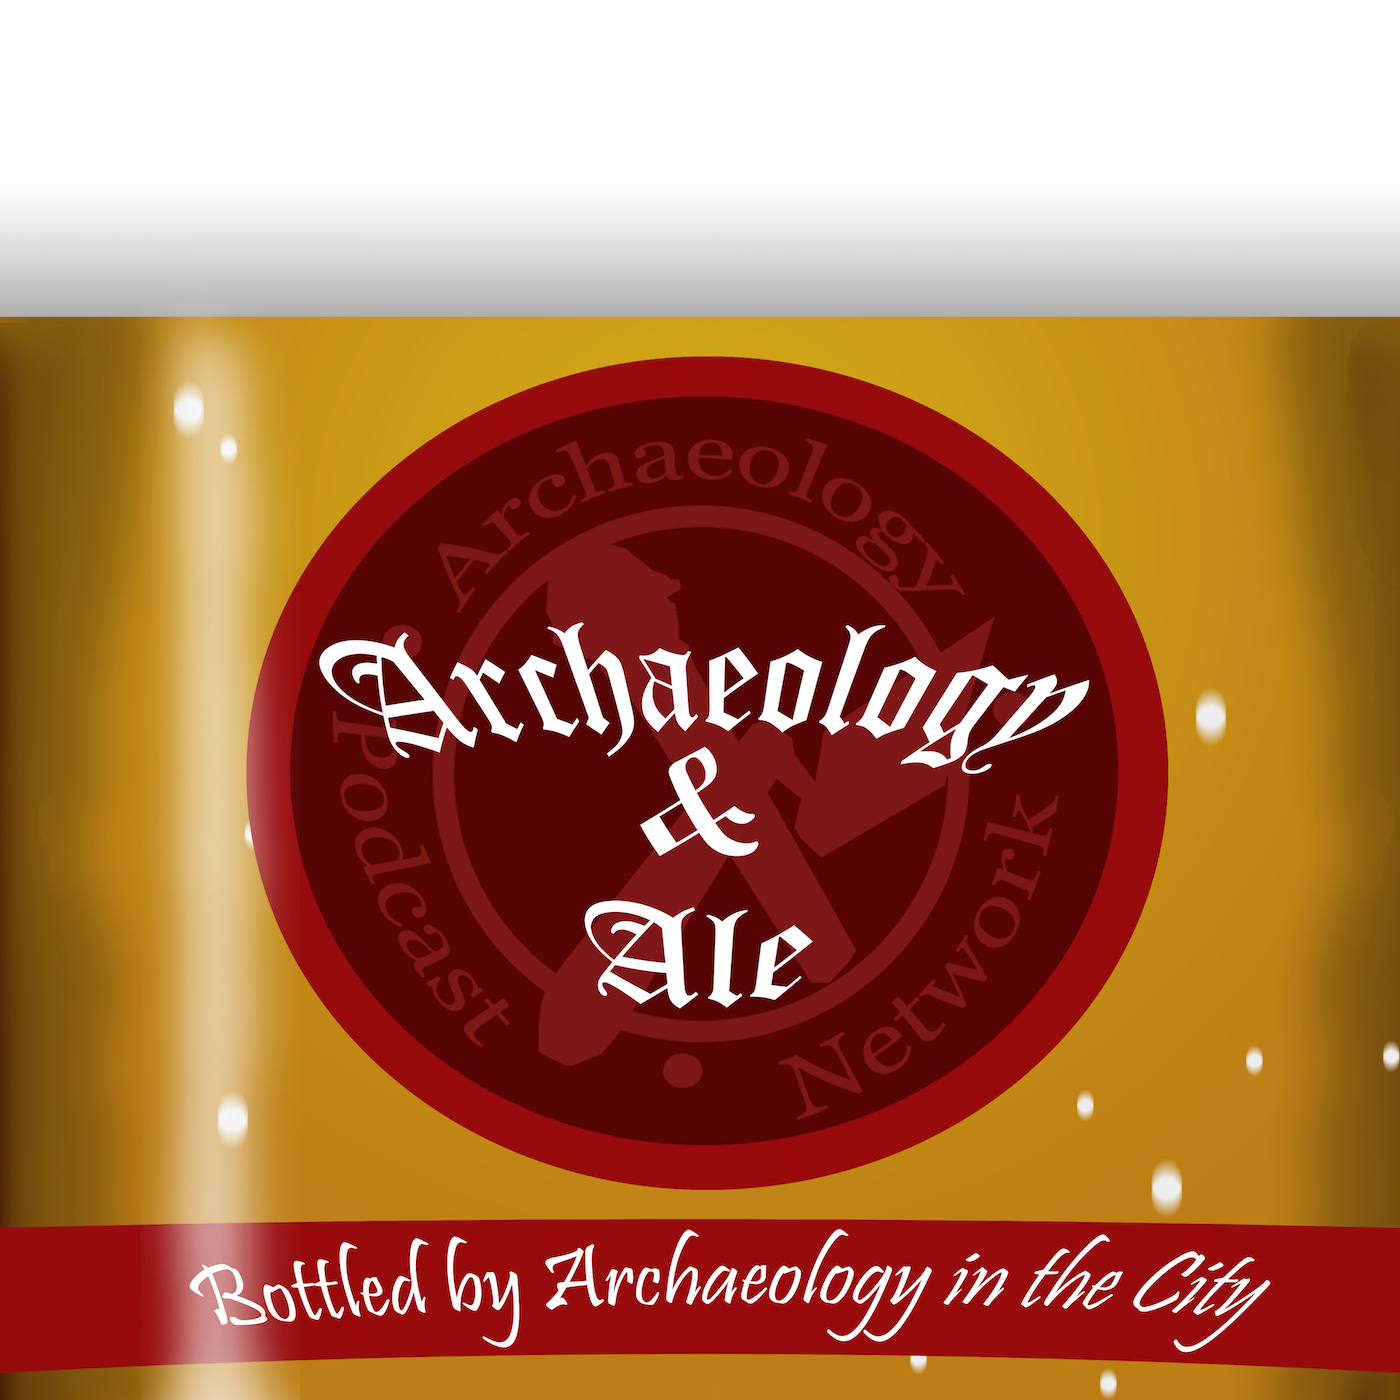 Archaeology and Ale - Archaeology Podcast Network